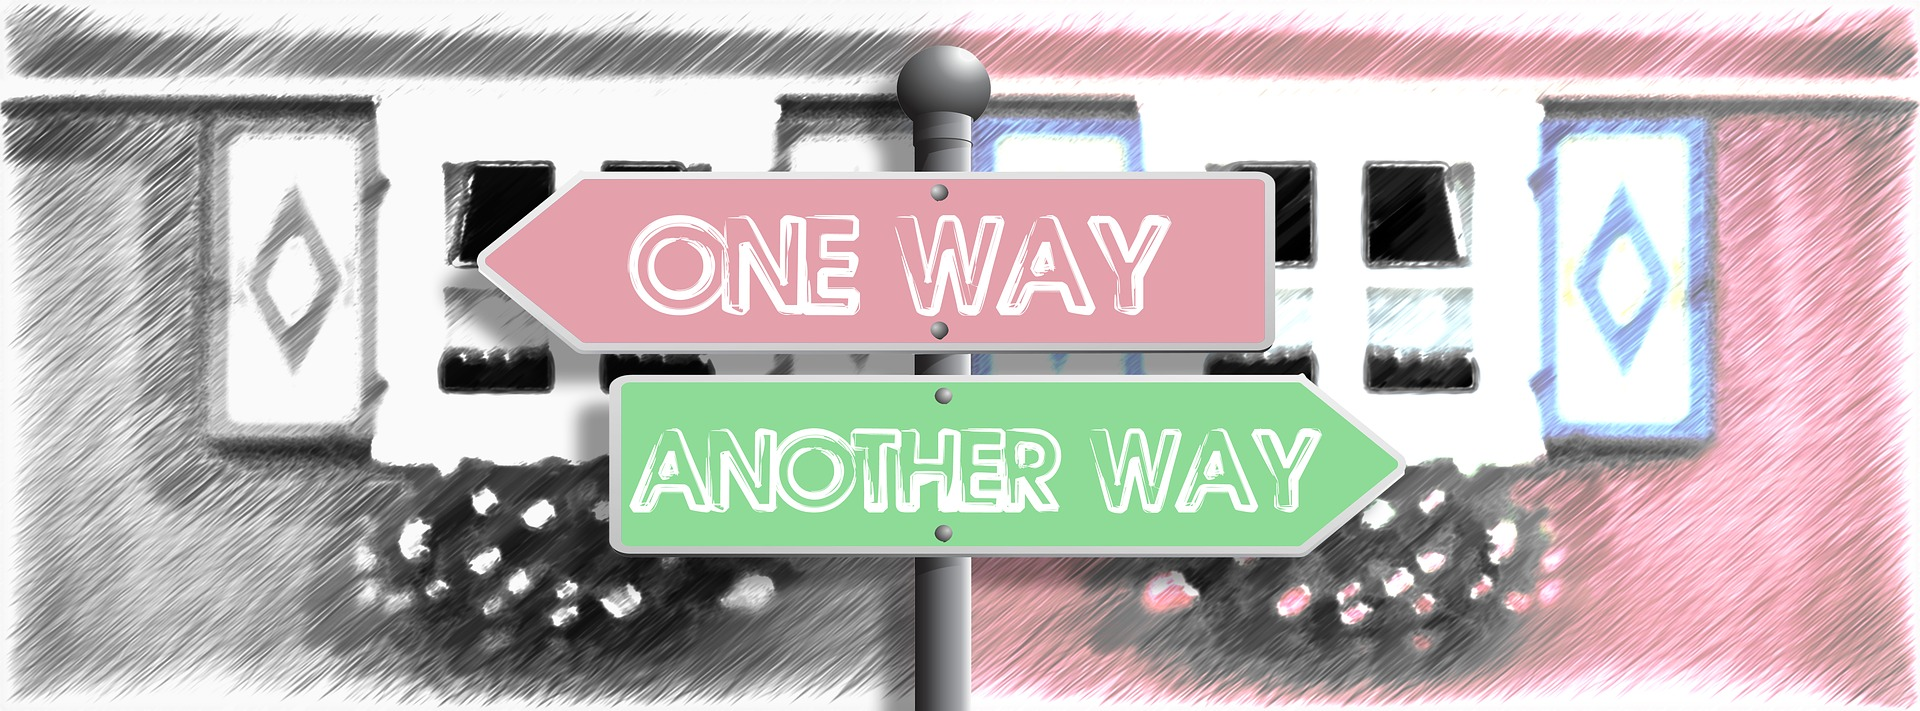 Directions, credit to Pixabay